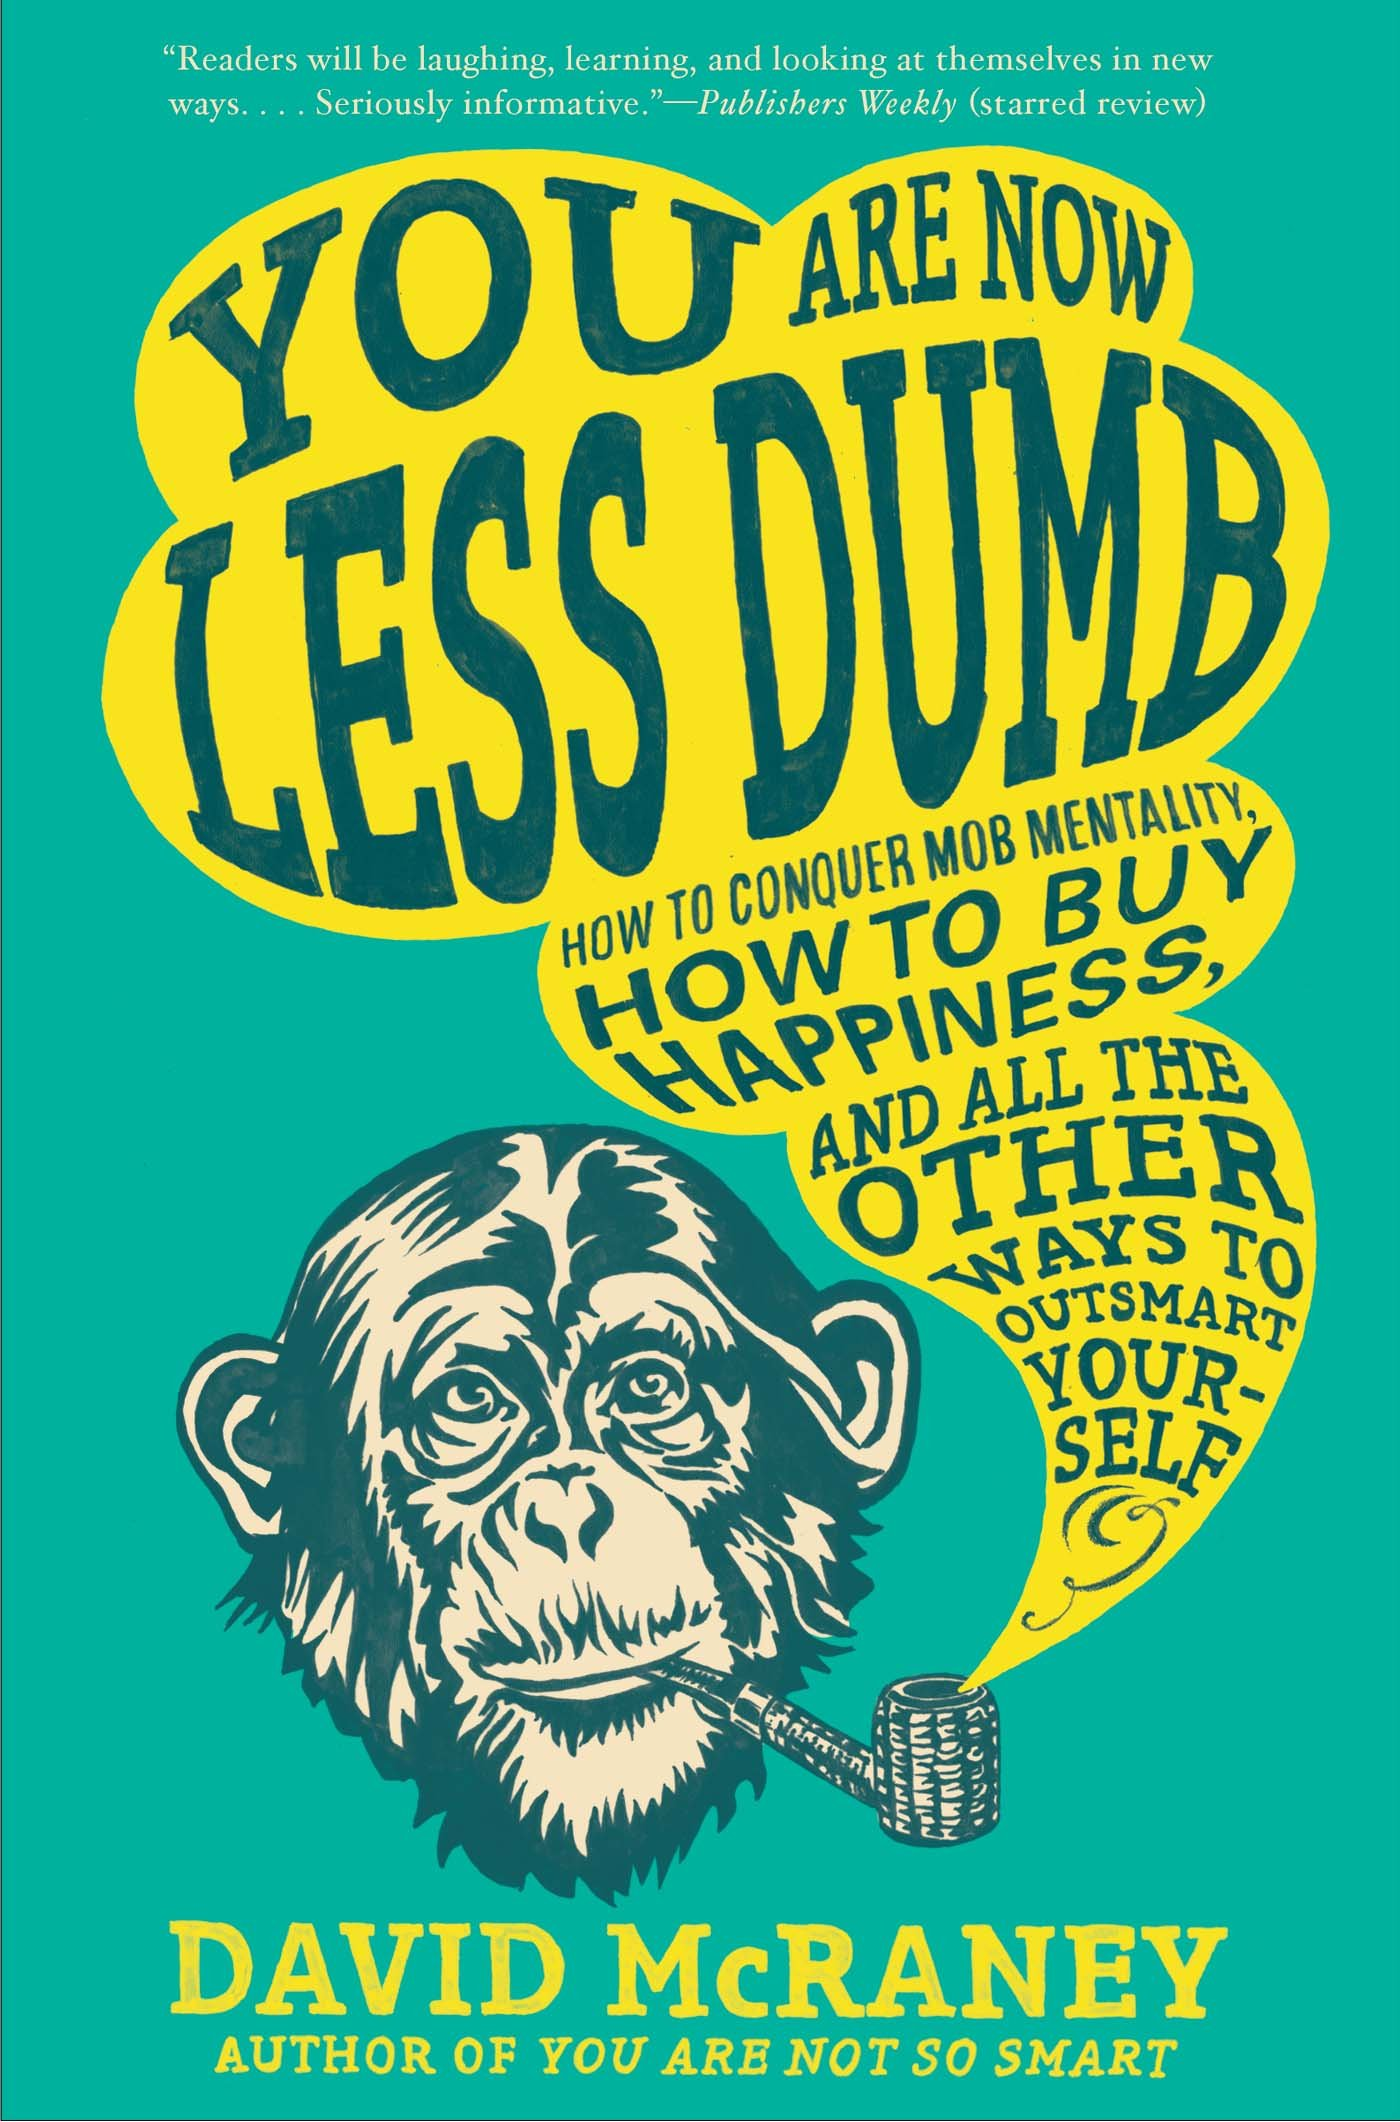 You are now less dumb how to conquer mob mentality how to buy you are now less dumb how to conquer mob mentality how to buy happiness and all the other ways to outsmart yourself david mcraney 9781592408795 fandeluxe PDF